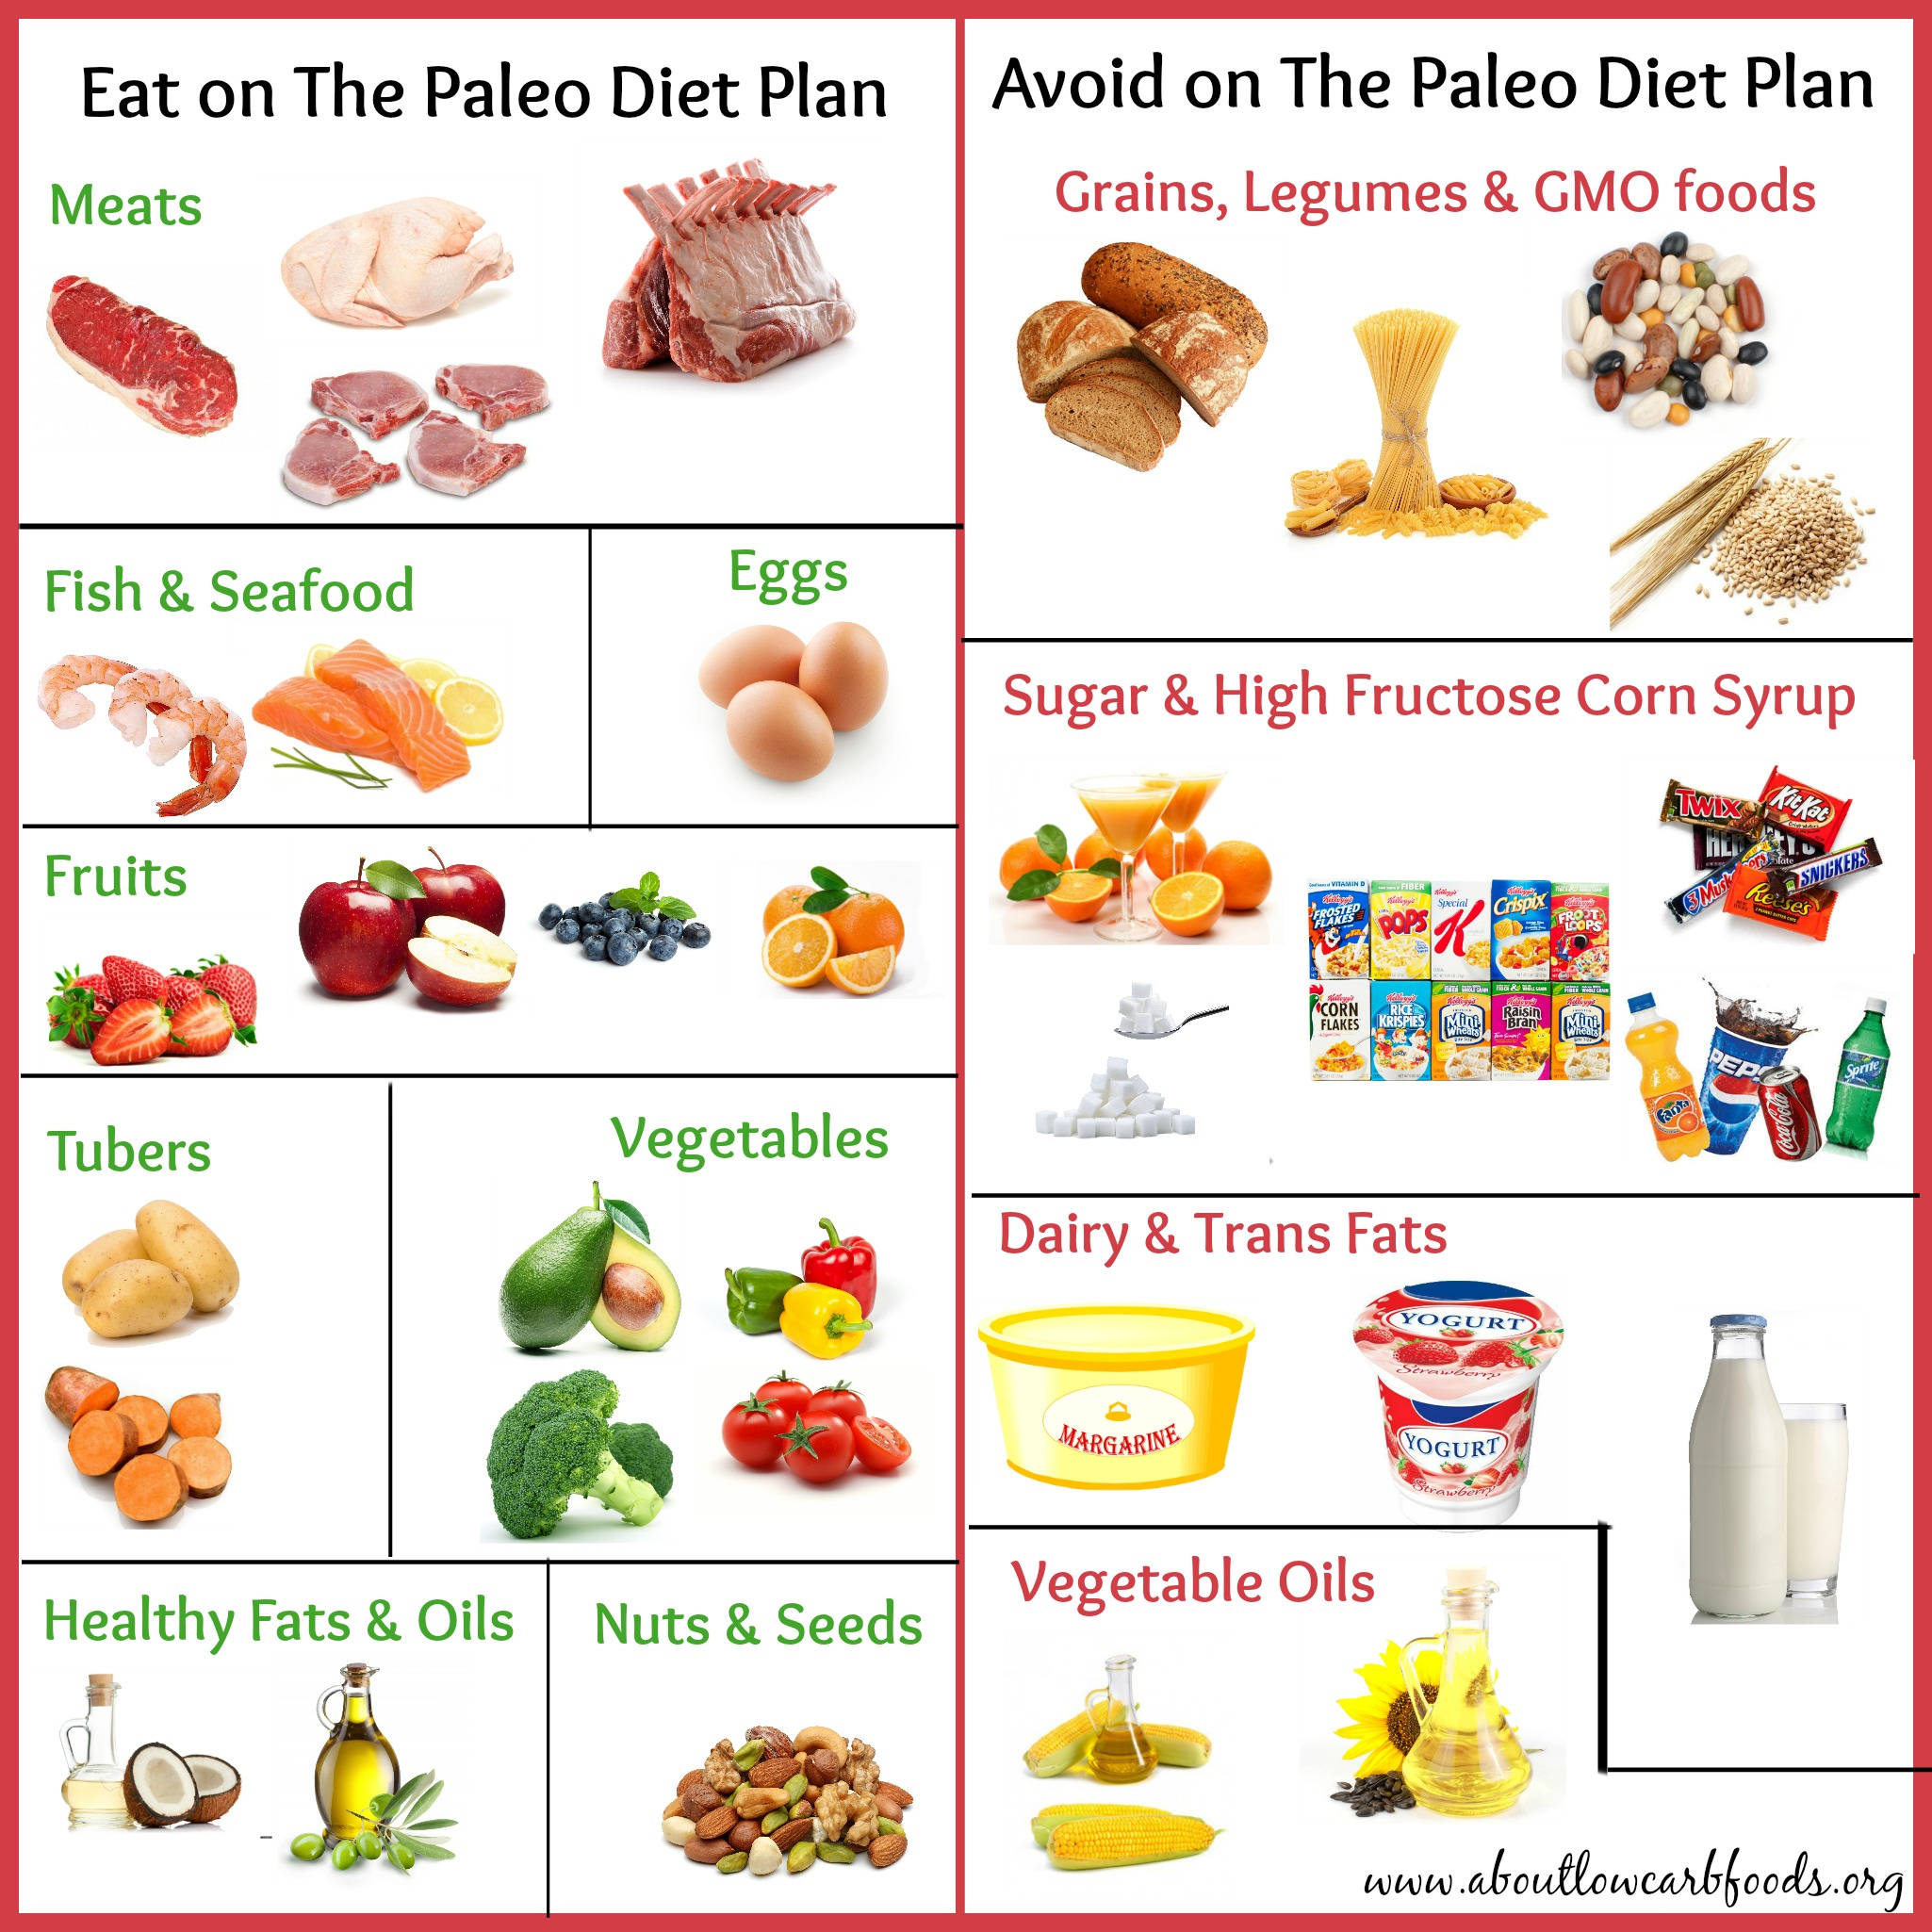 7 Myths About The Paleo Diet, The Caveman's Way of Eating